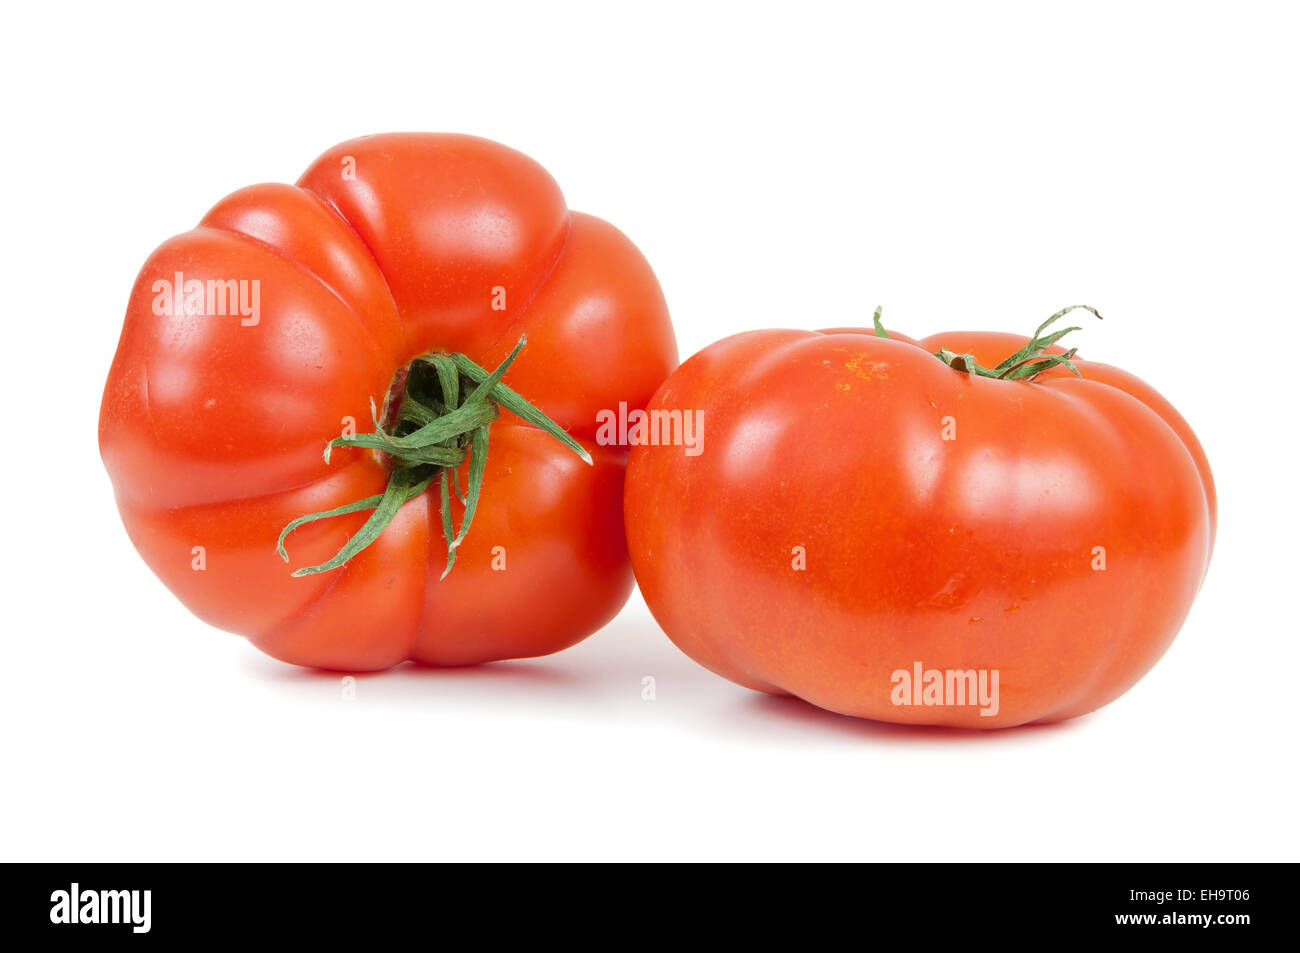 Fresh tomatoes isolated on white background with clipping path - Stock Image